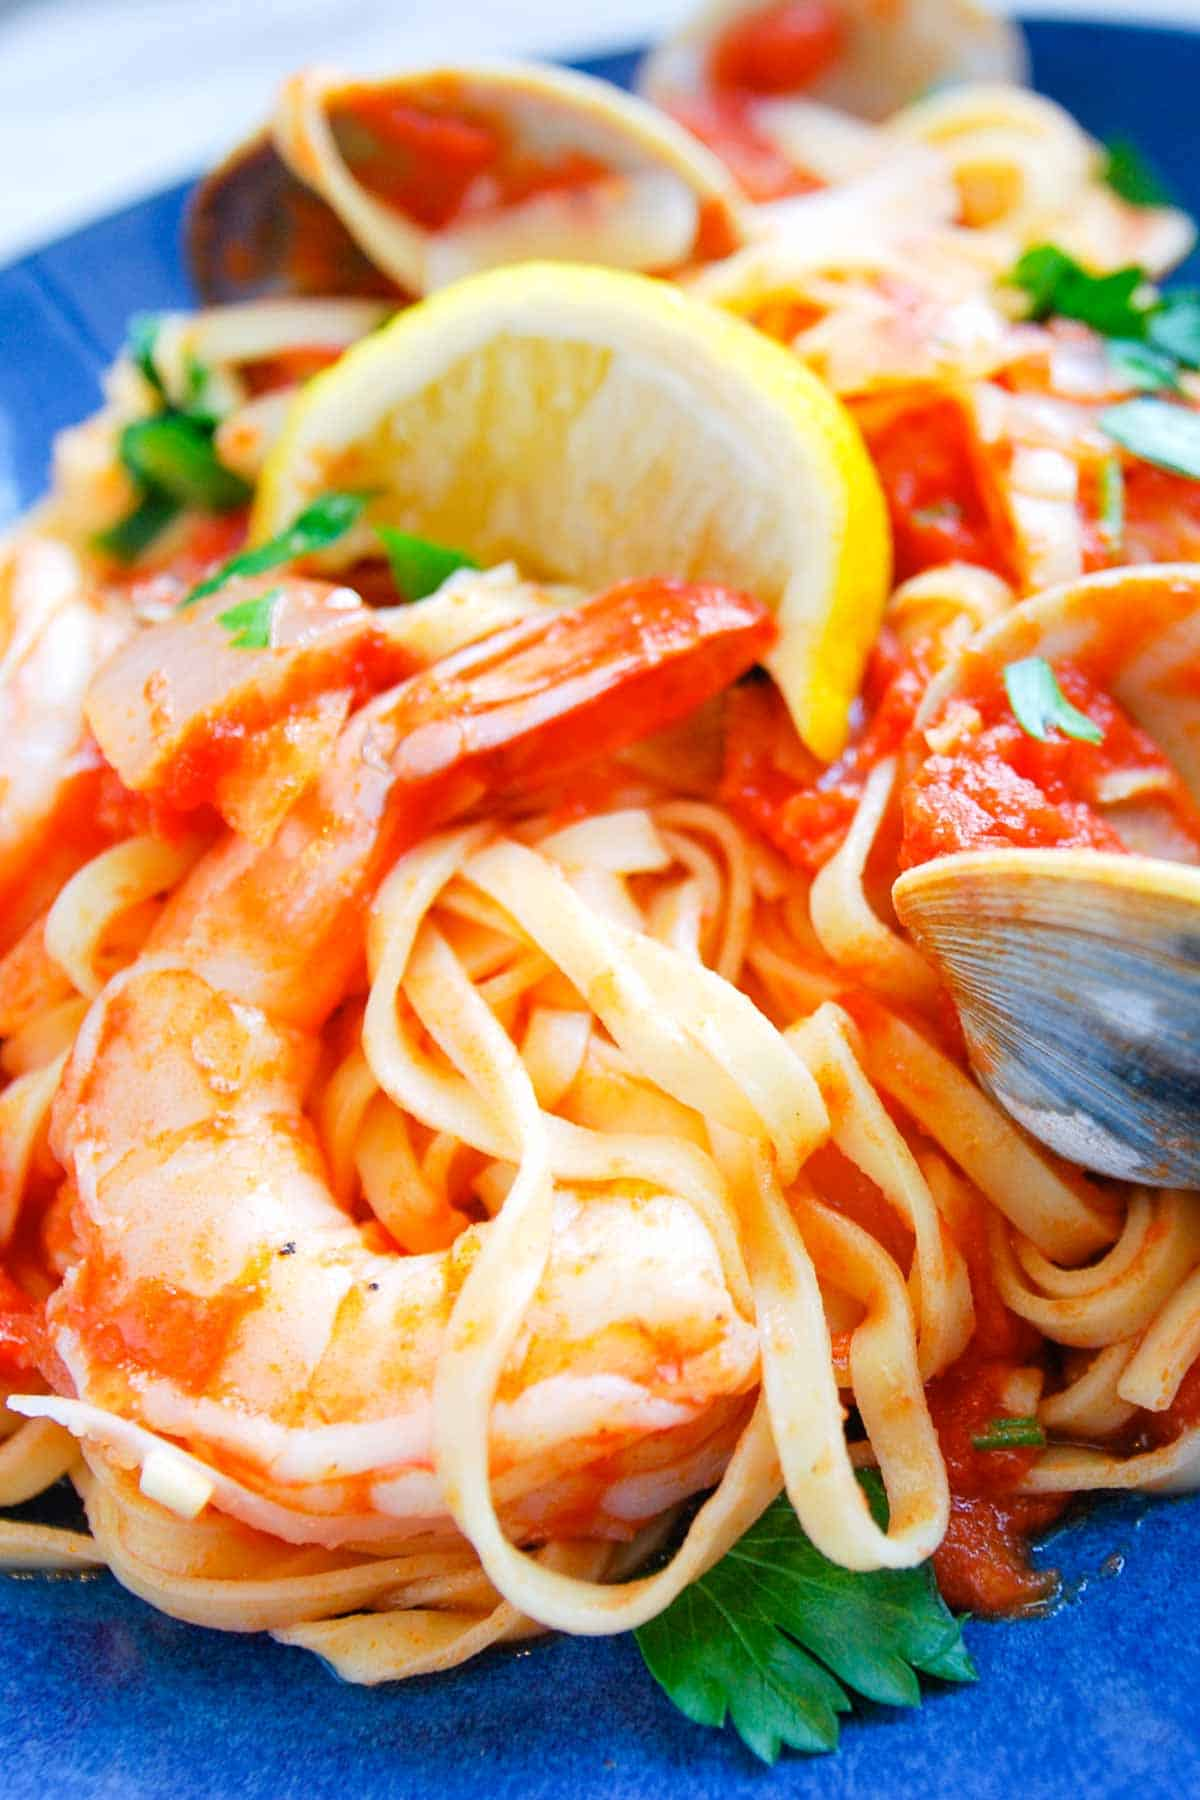 How to Make Spicy Pasta with Shrimp and Clams